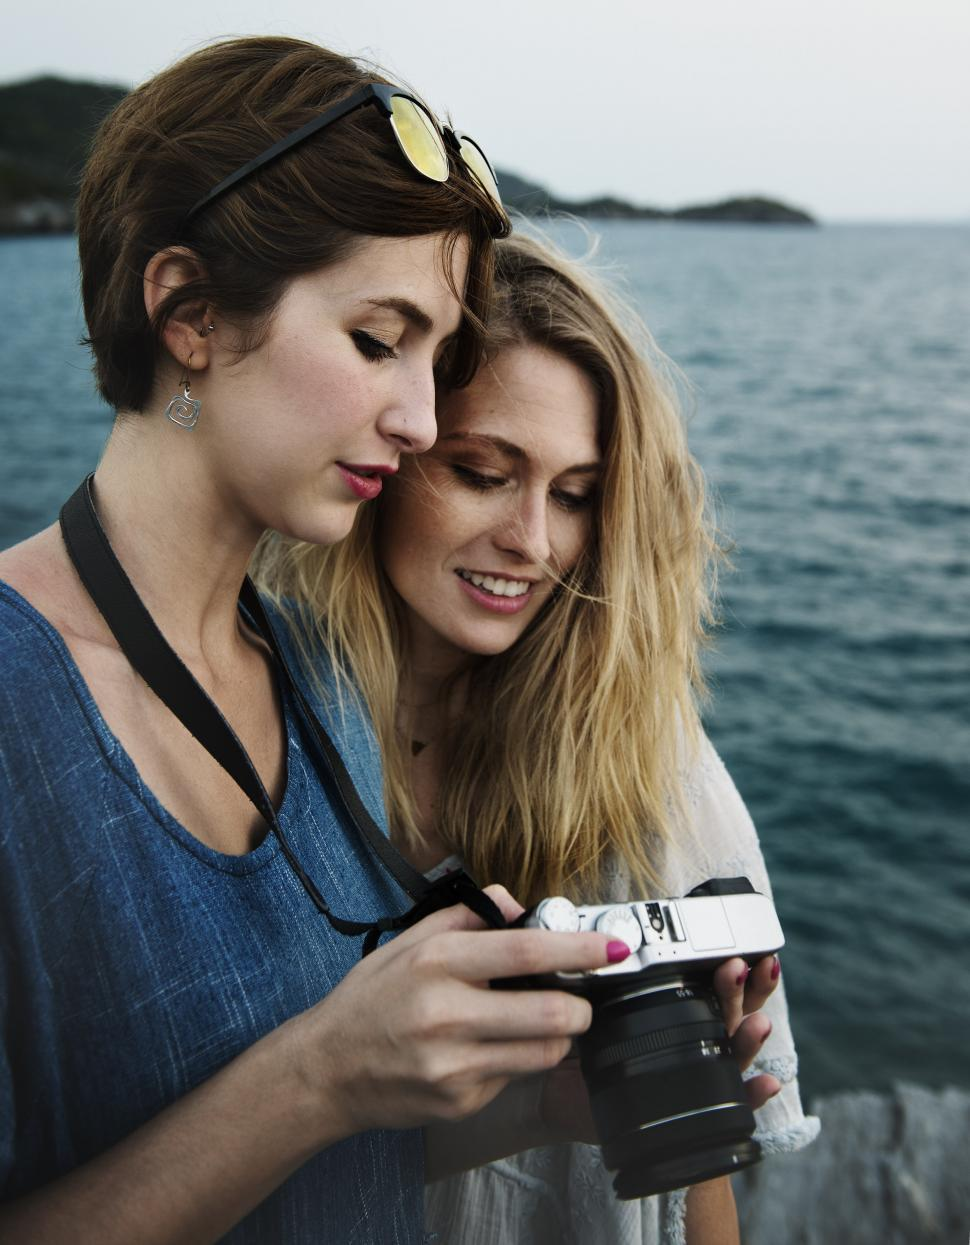 Download Free Stock Photo of Two young women looking at their photograph on the cam